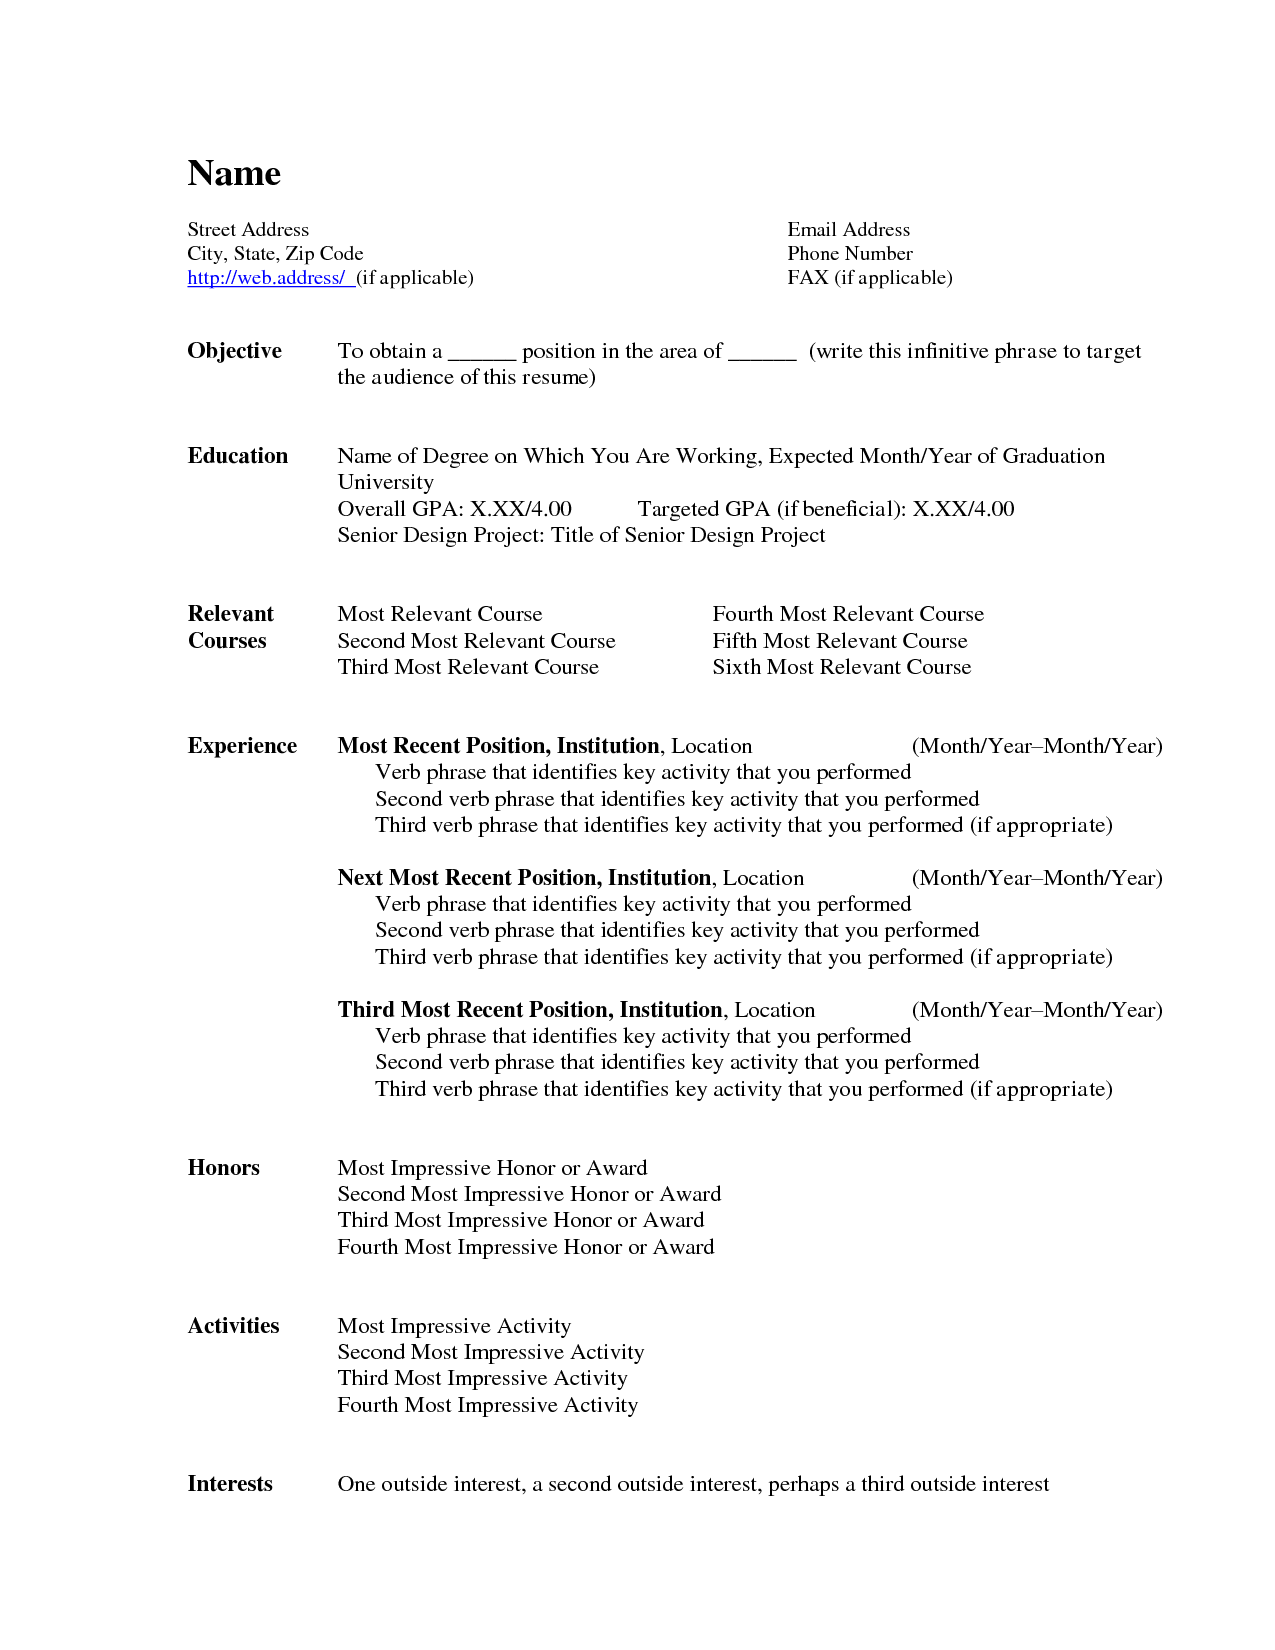 microsoft word resume template resume builder resume resume httpwwwjobresume - Microsoft Resume Template